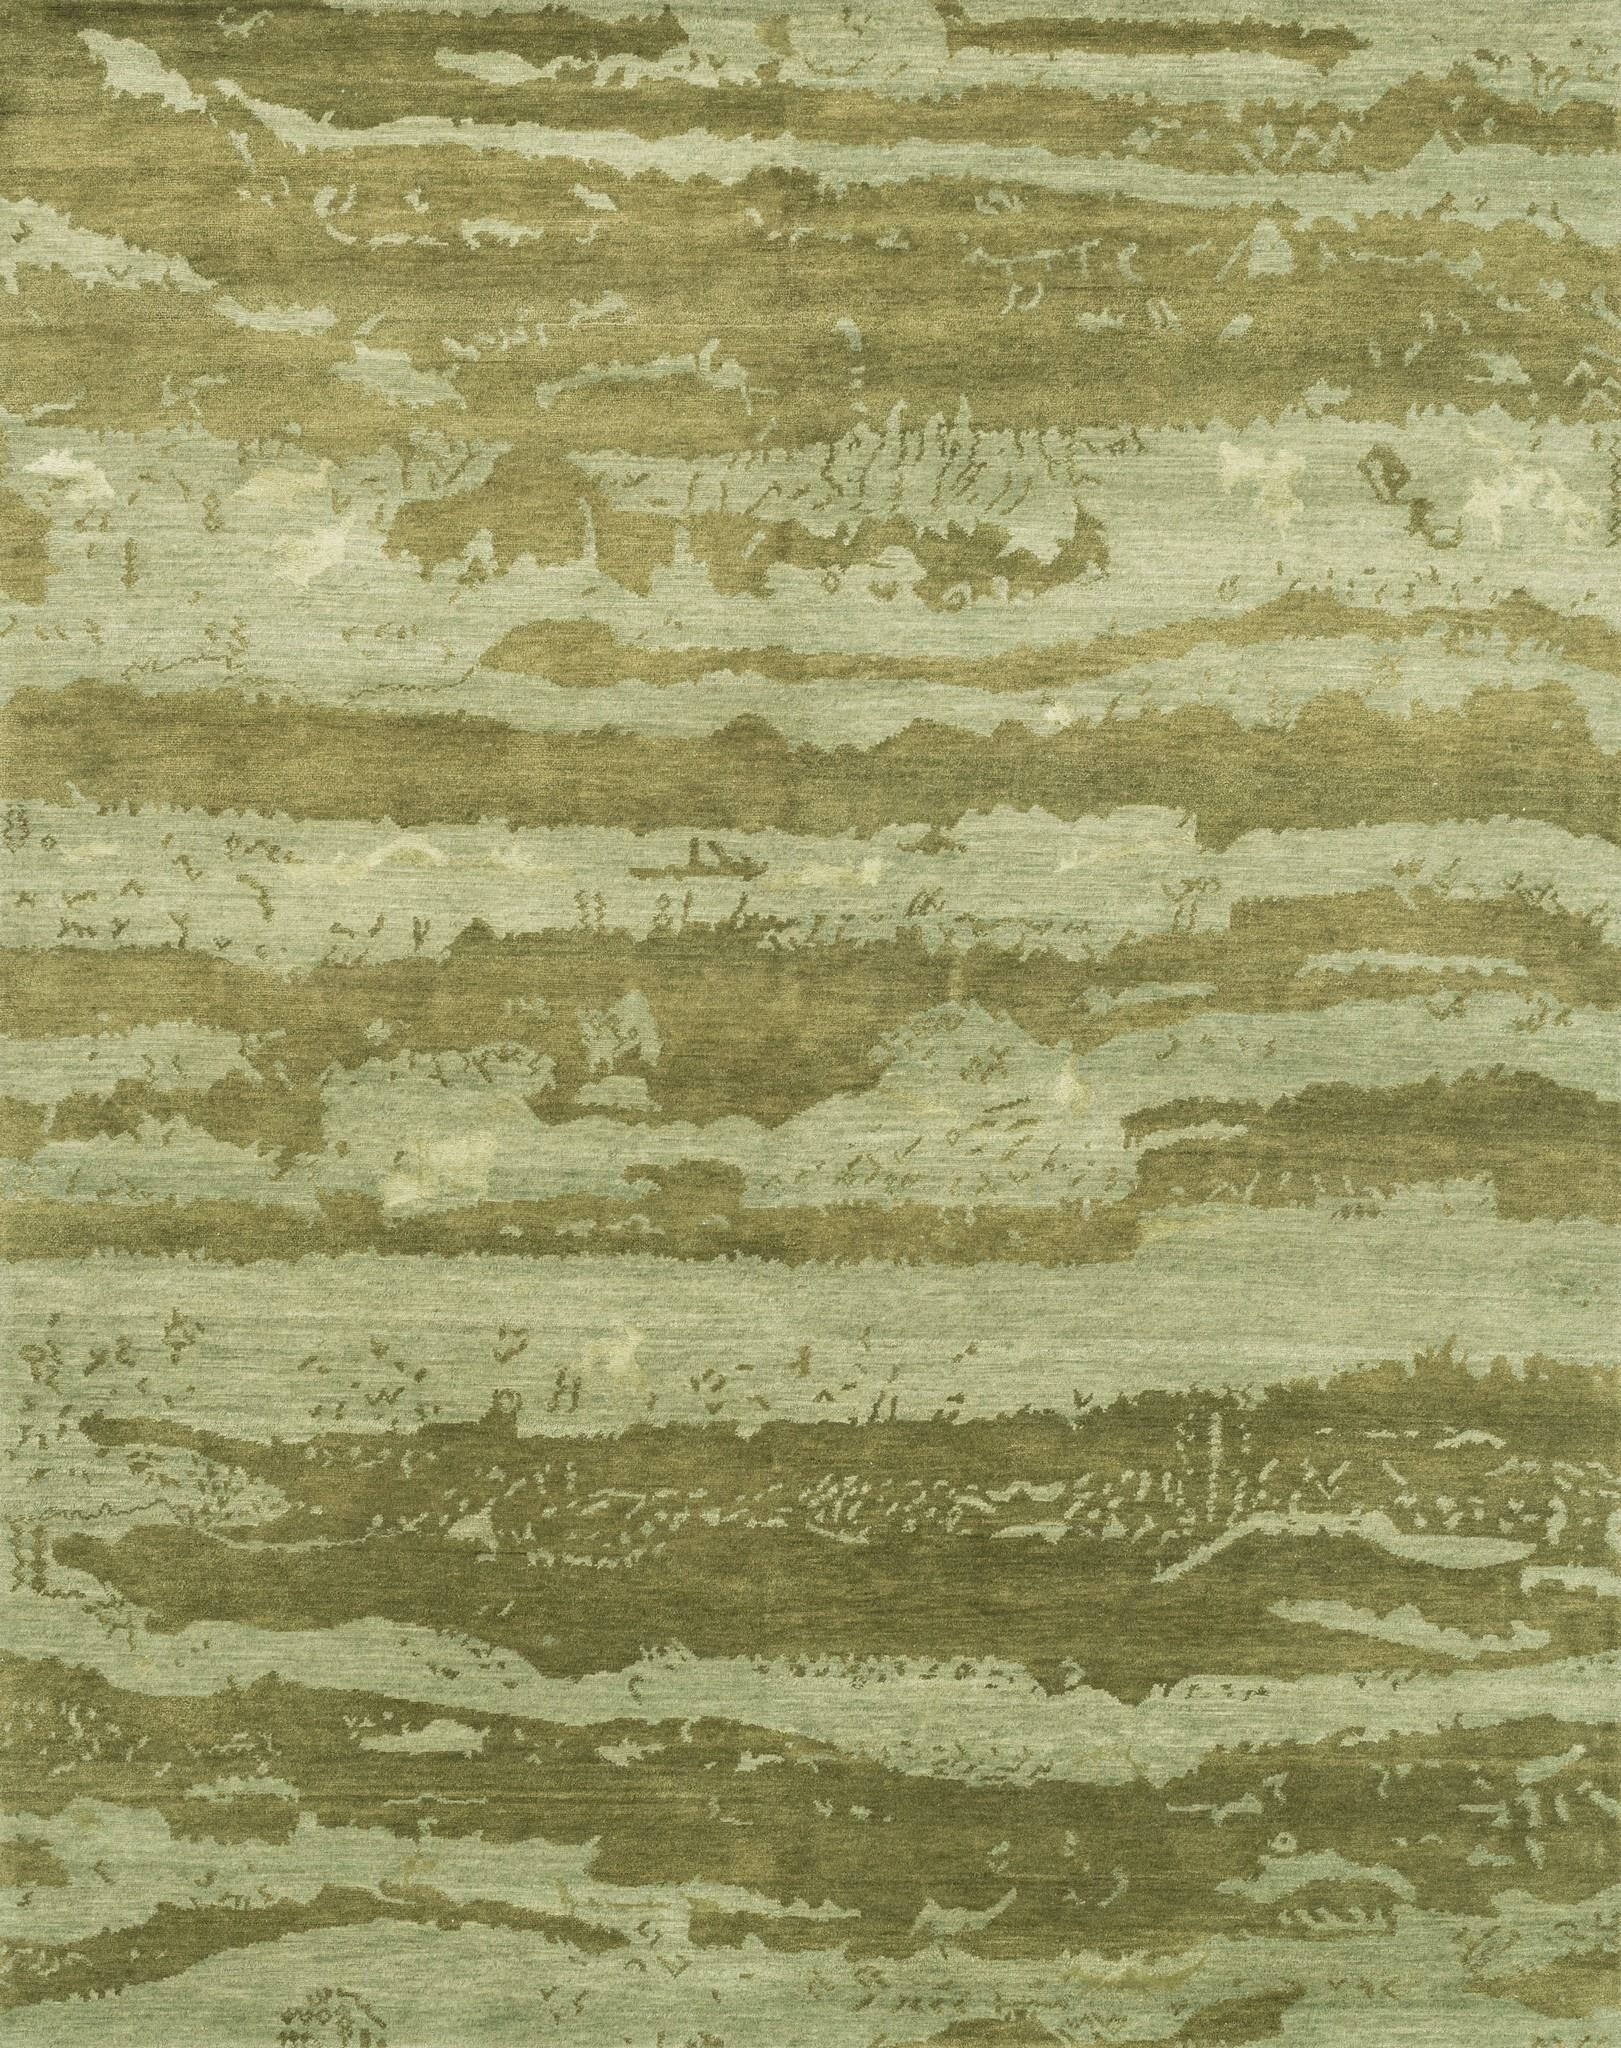 Shaunda Hand-Knotted Sea Foam Green Area Rug Rug Size: Rectangle 2' x 3'